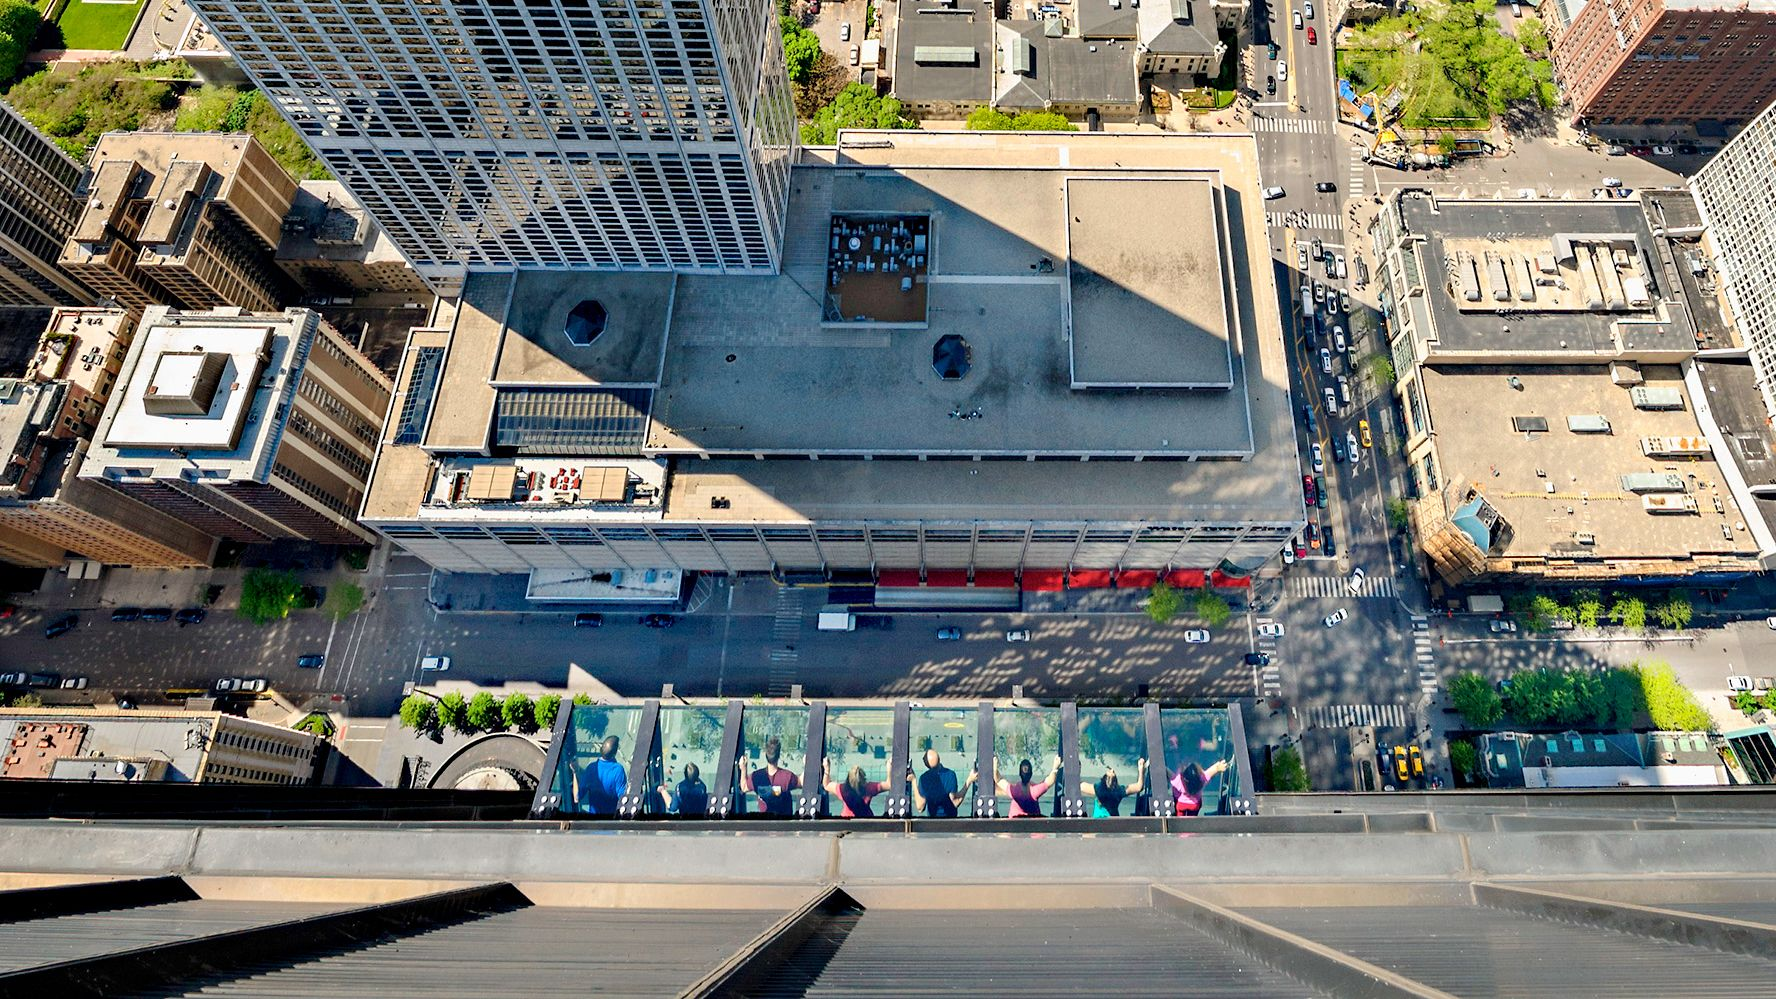 Aerial view of 8 people at the titled view in Willis Tower, Chicago